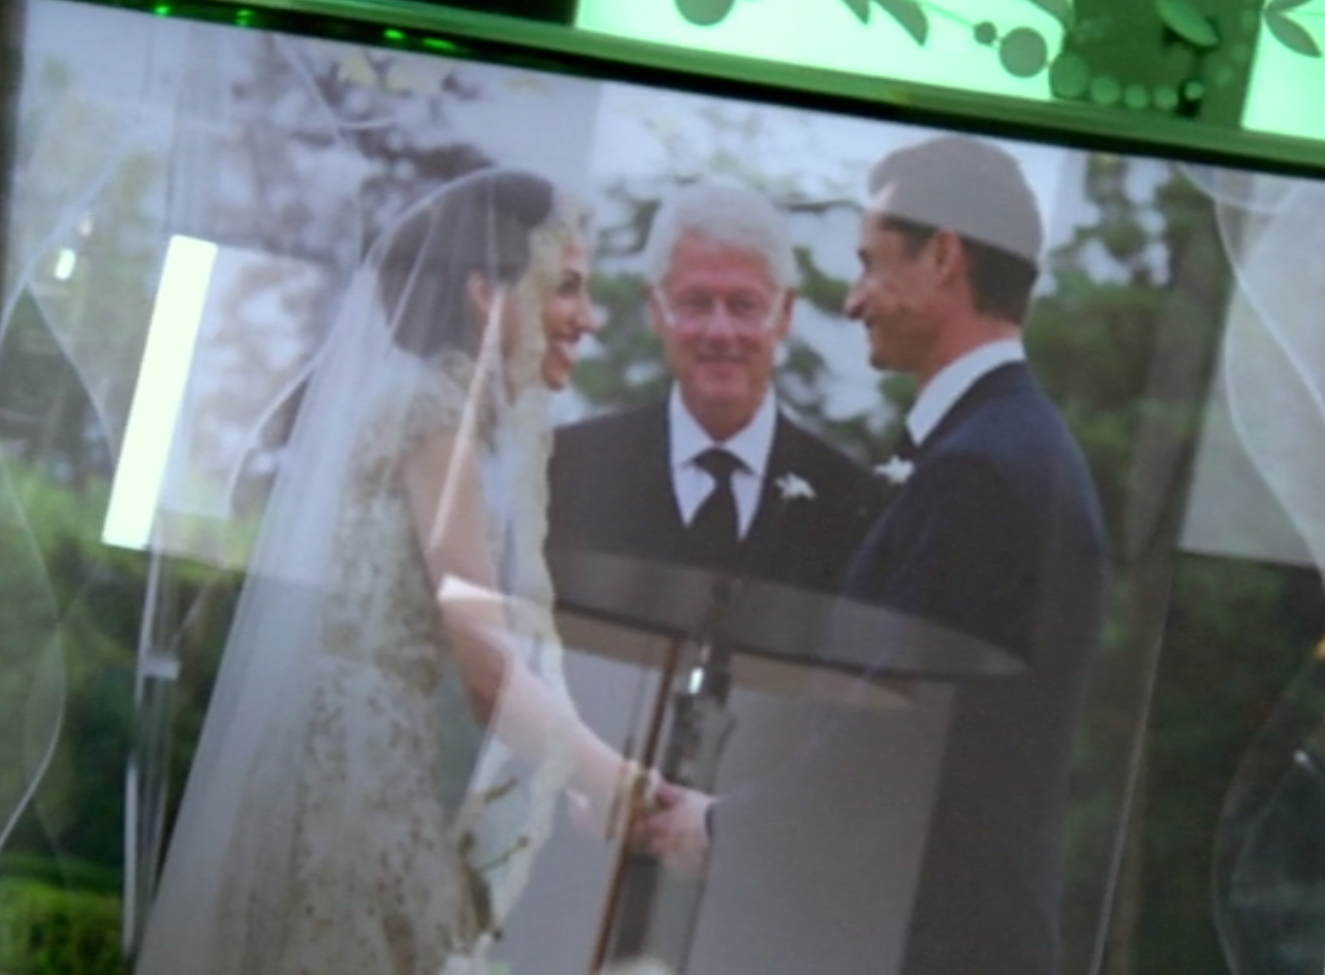 the fated weiner wedding a photo the media won�t reveal